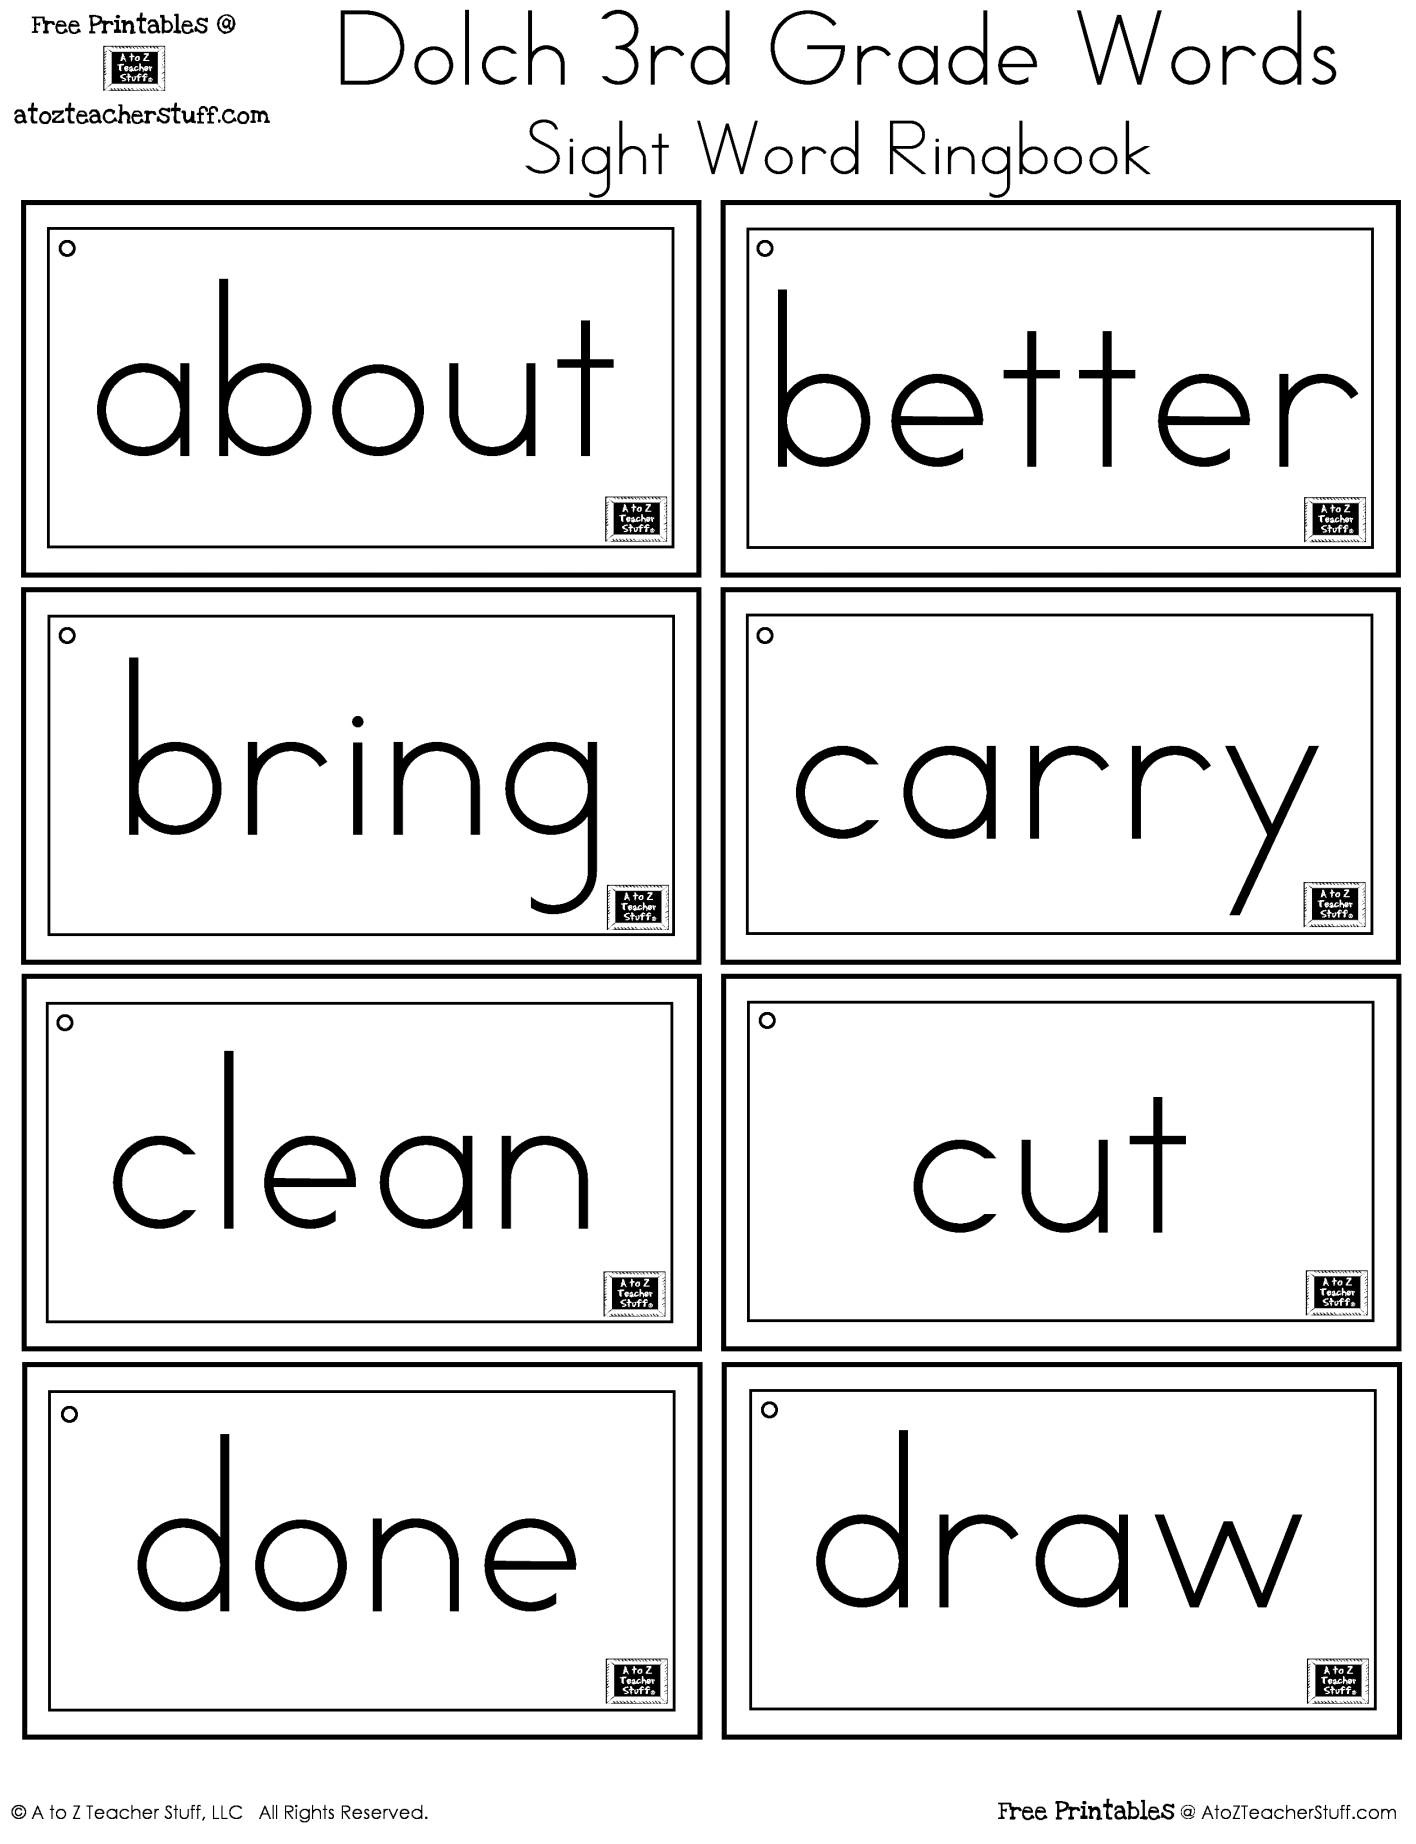 Worksheets Sight Word Worksheets For First Grade third grade dolch sight words ring book a to z teacher stuff 3rd word ringbook